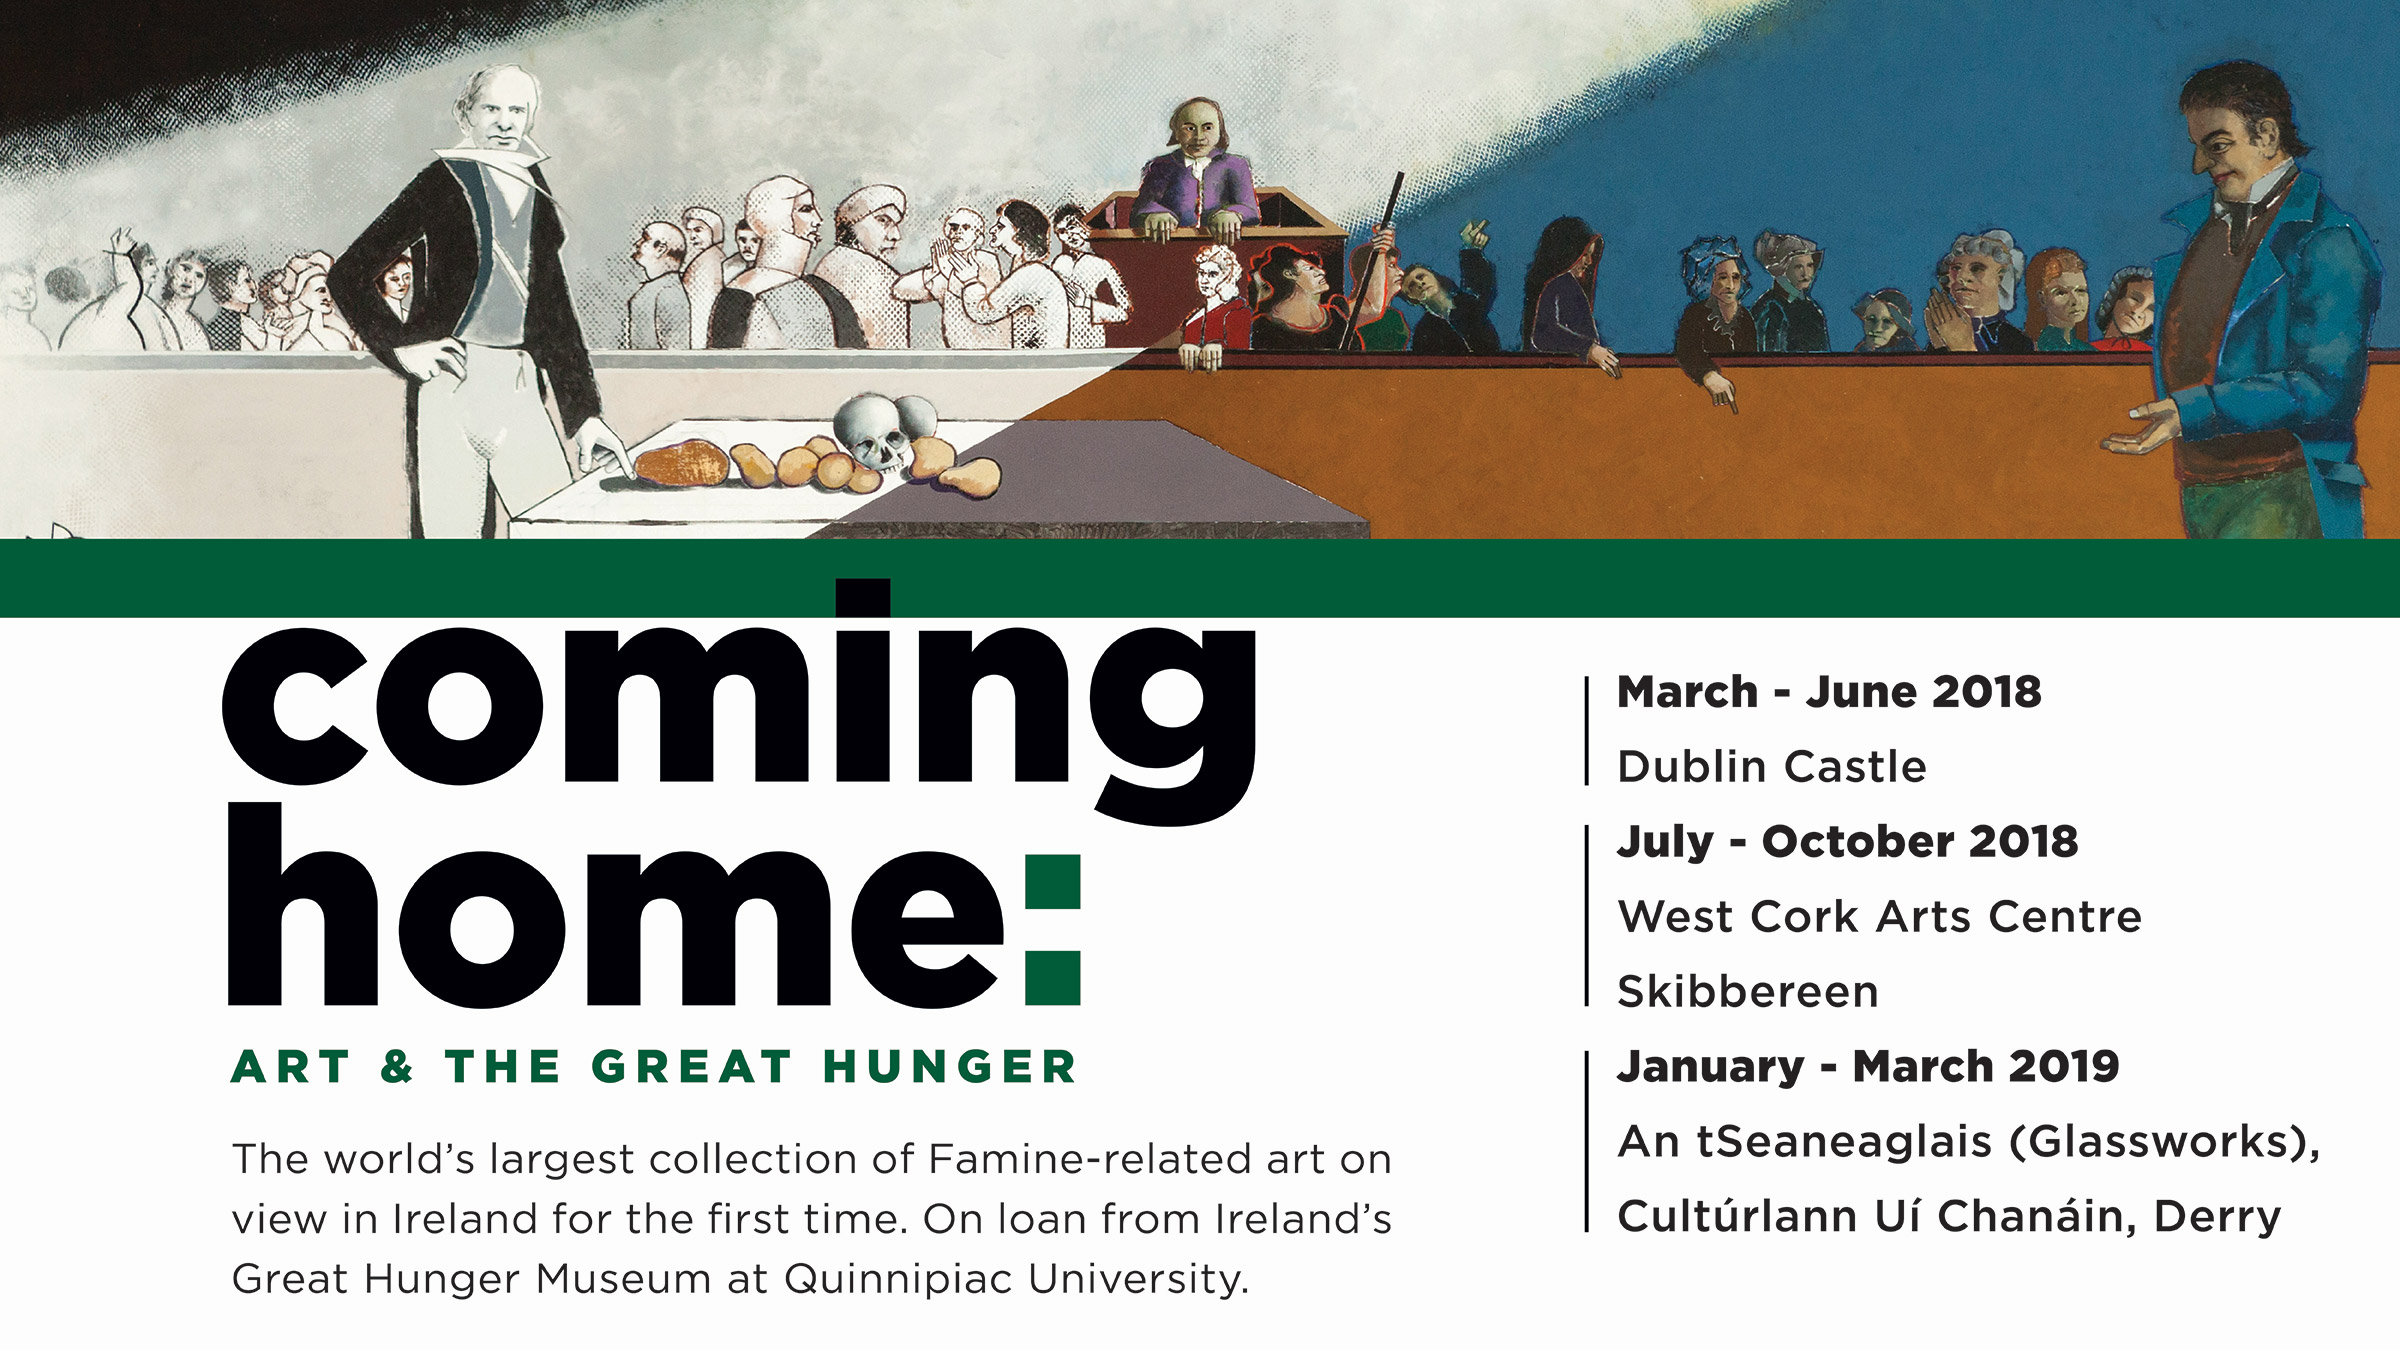 Promotional banner image showing the dates of the Coming Home: Art and the Great Hunger exhibit in Ireland.